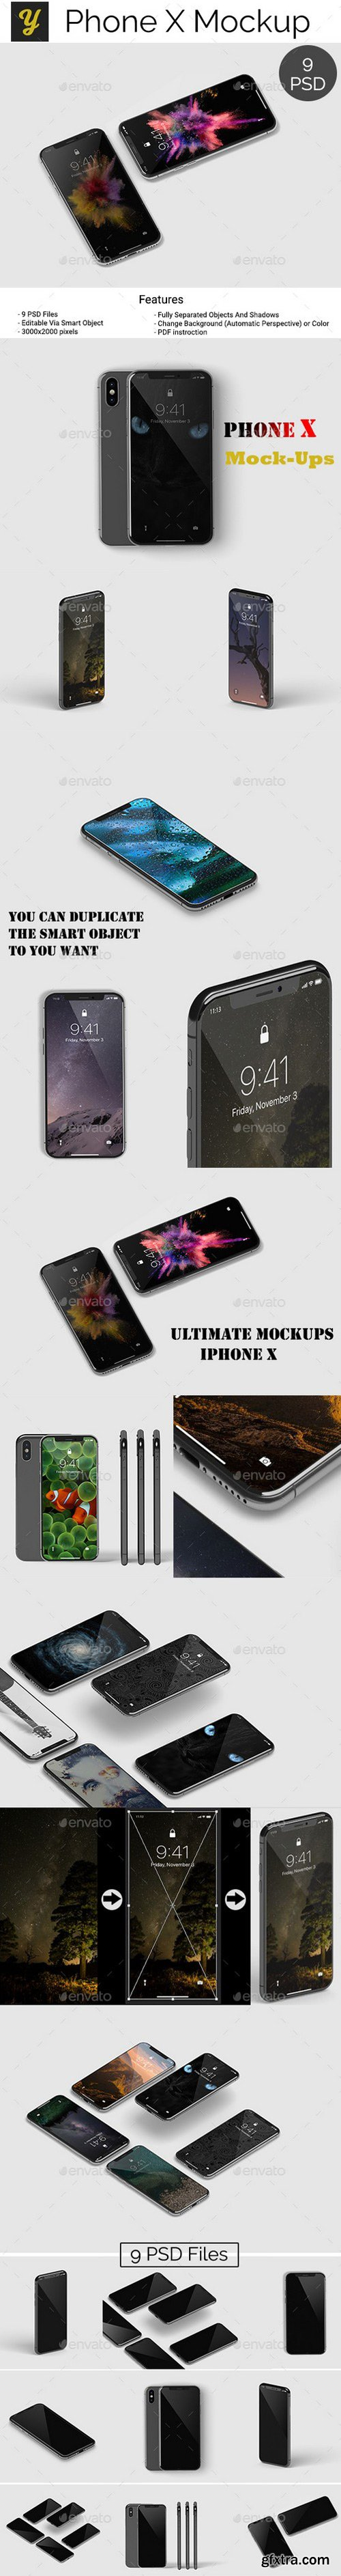 Graphicriver - 22061993 iPhone X Mockup